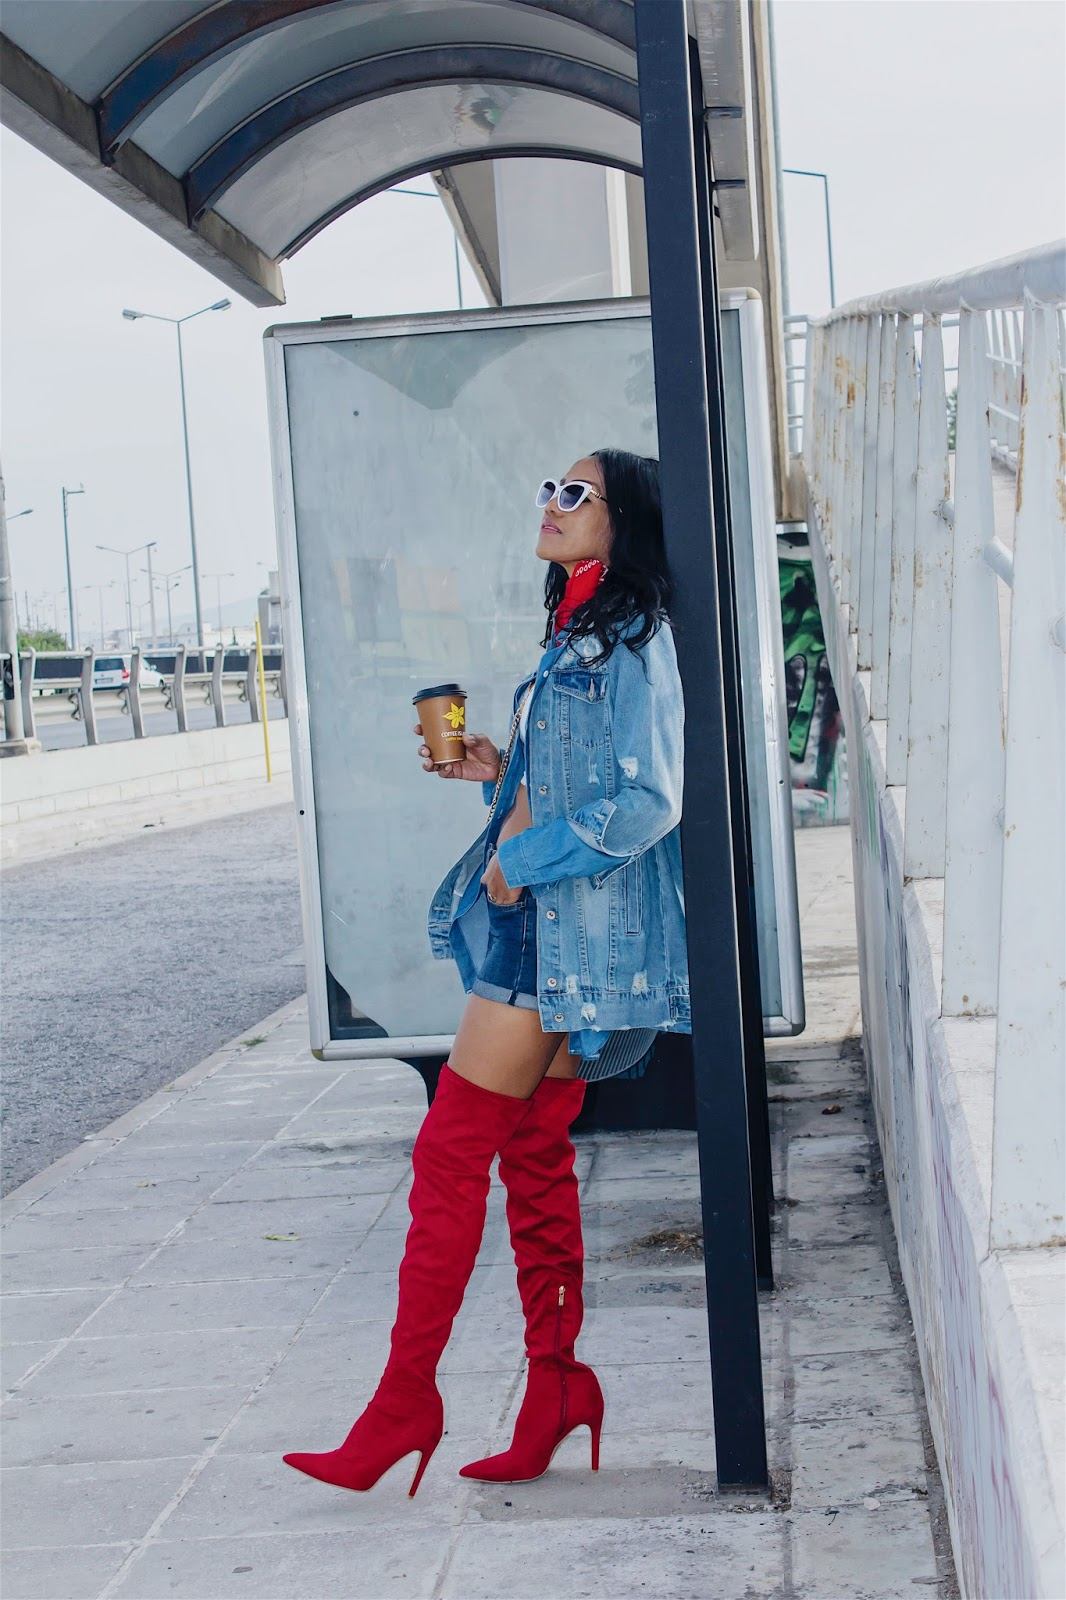 a65e3e2e8a1 Shop my RED POINTED TOE KNEE-HIGH HEELED BOOTS from Chicme and more! My  DISTRESSED DENIM COAT from Rosegal. Happy Shopping Thank you for reading!  xoxo